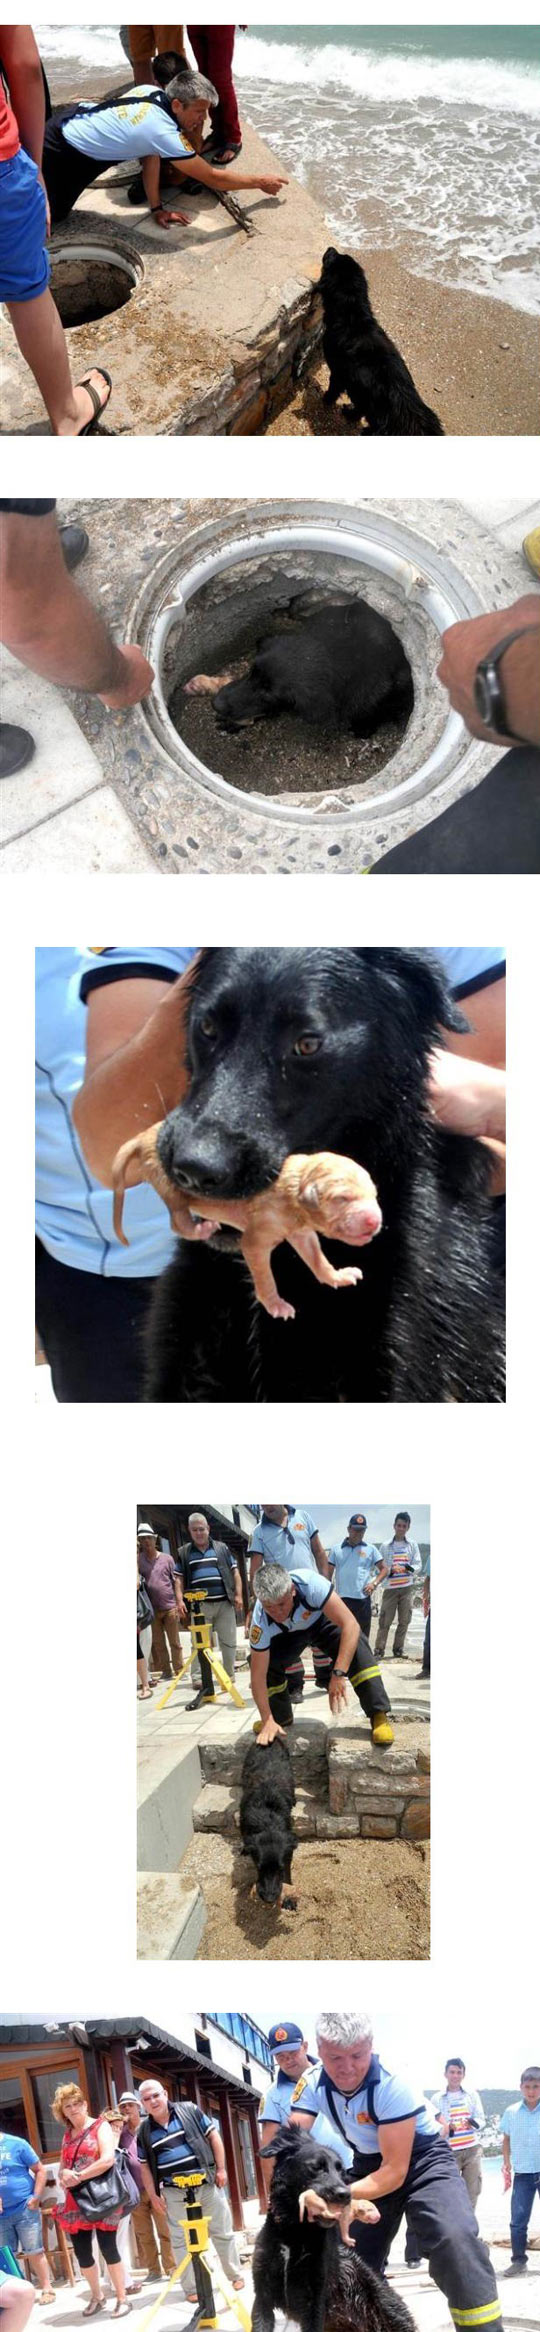 funny-rescue-team-sea-dog-mother-puppies